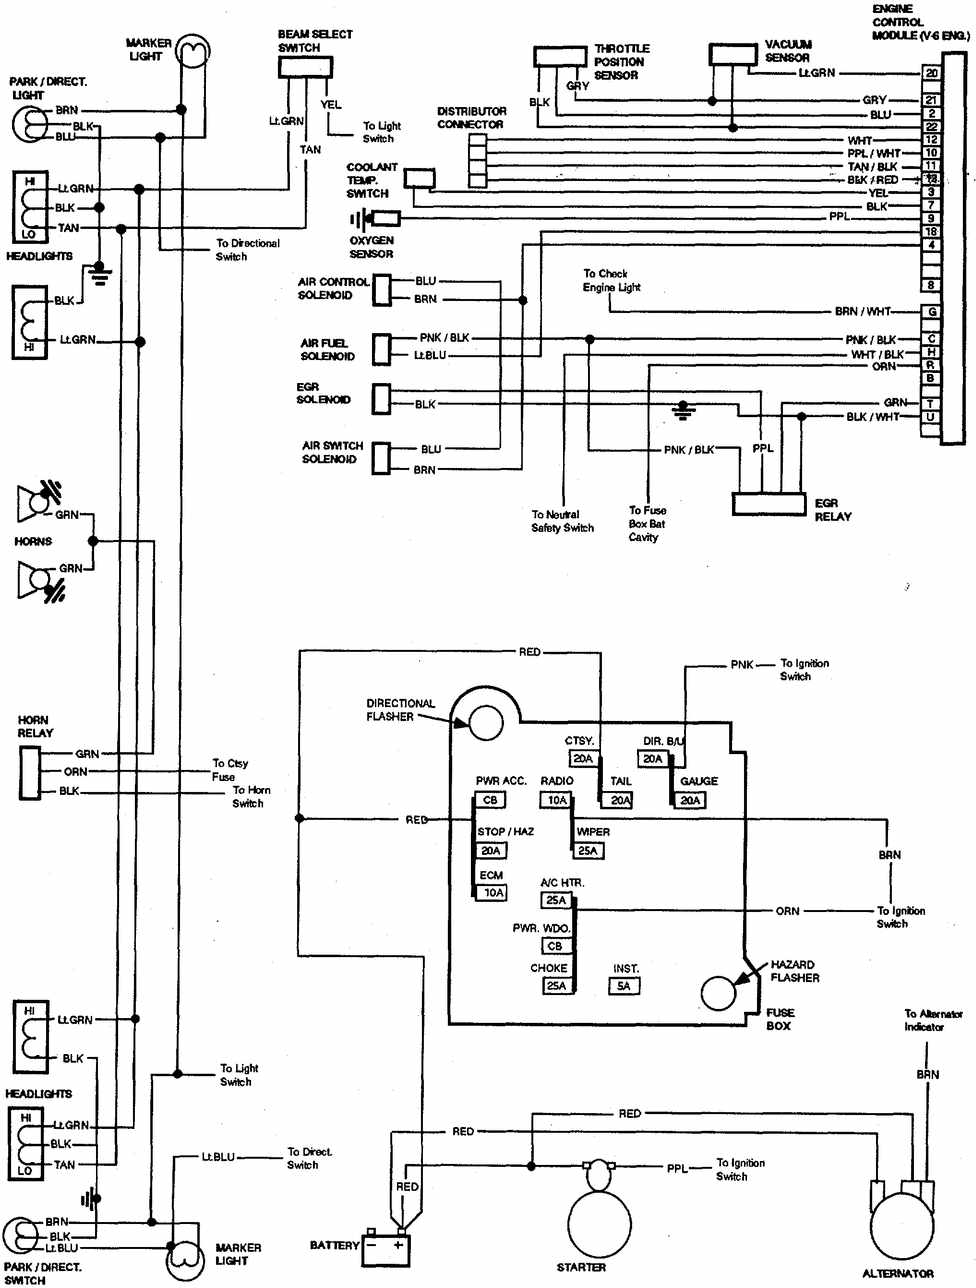 1996 chevy silverado wiring diagram for stereo vw jetta radio chevrolet v8 trucks 1981-1987 electrical | all about diagrams